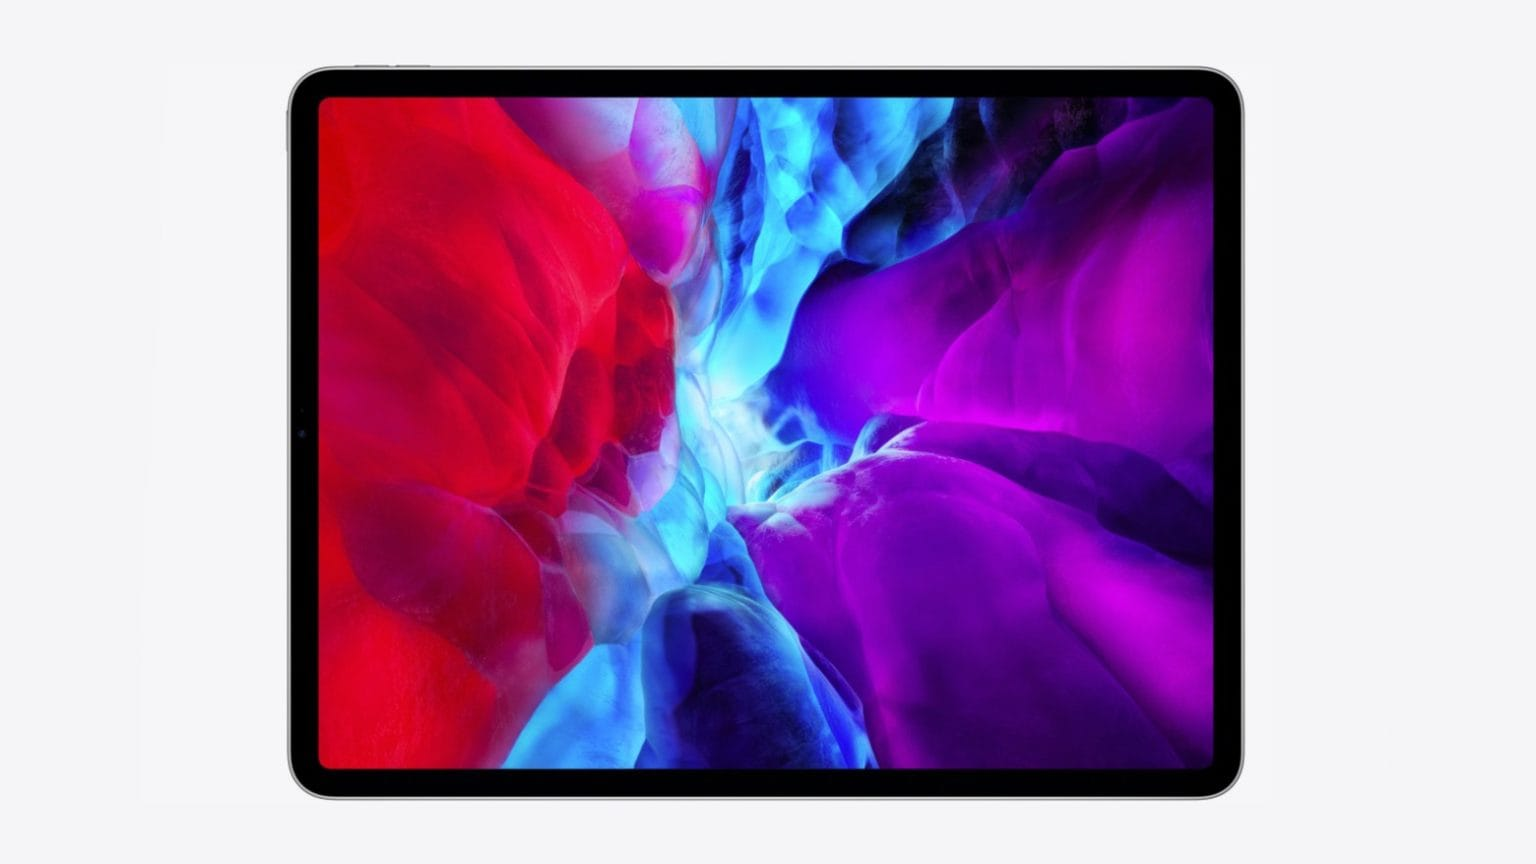 2020 iPad Pro with official wallpaper